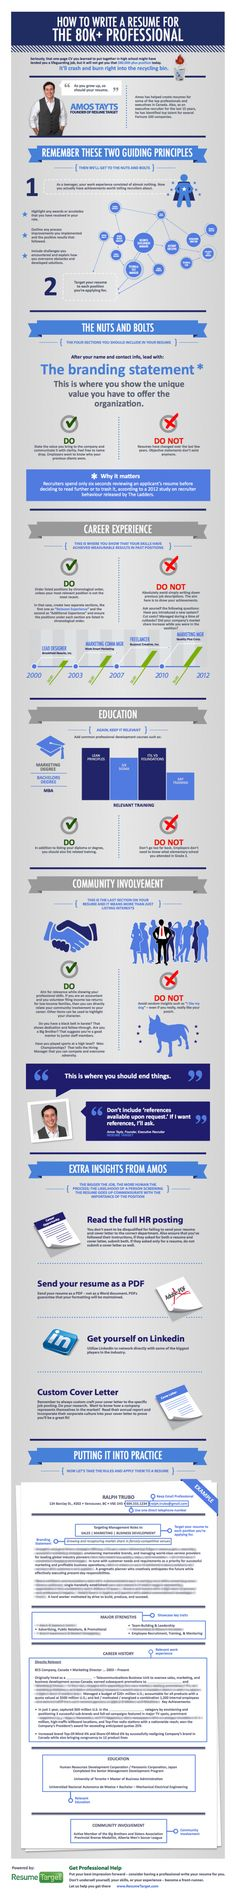 I think this is a terrific resource because it offers an in-depth analysis of some of the most important components needed to create an effective resume that can help you to advance in your given field.   Even for professionals who may just be starting out, this infographic provides very valuable information that can be applied to writing resumes for current positions, as well as for any future positions down the road.